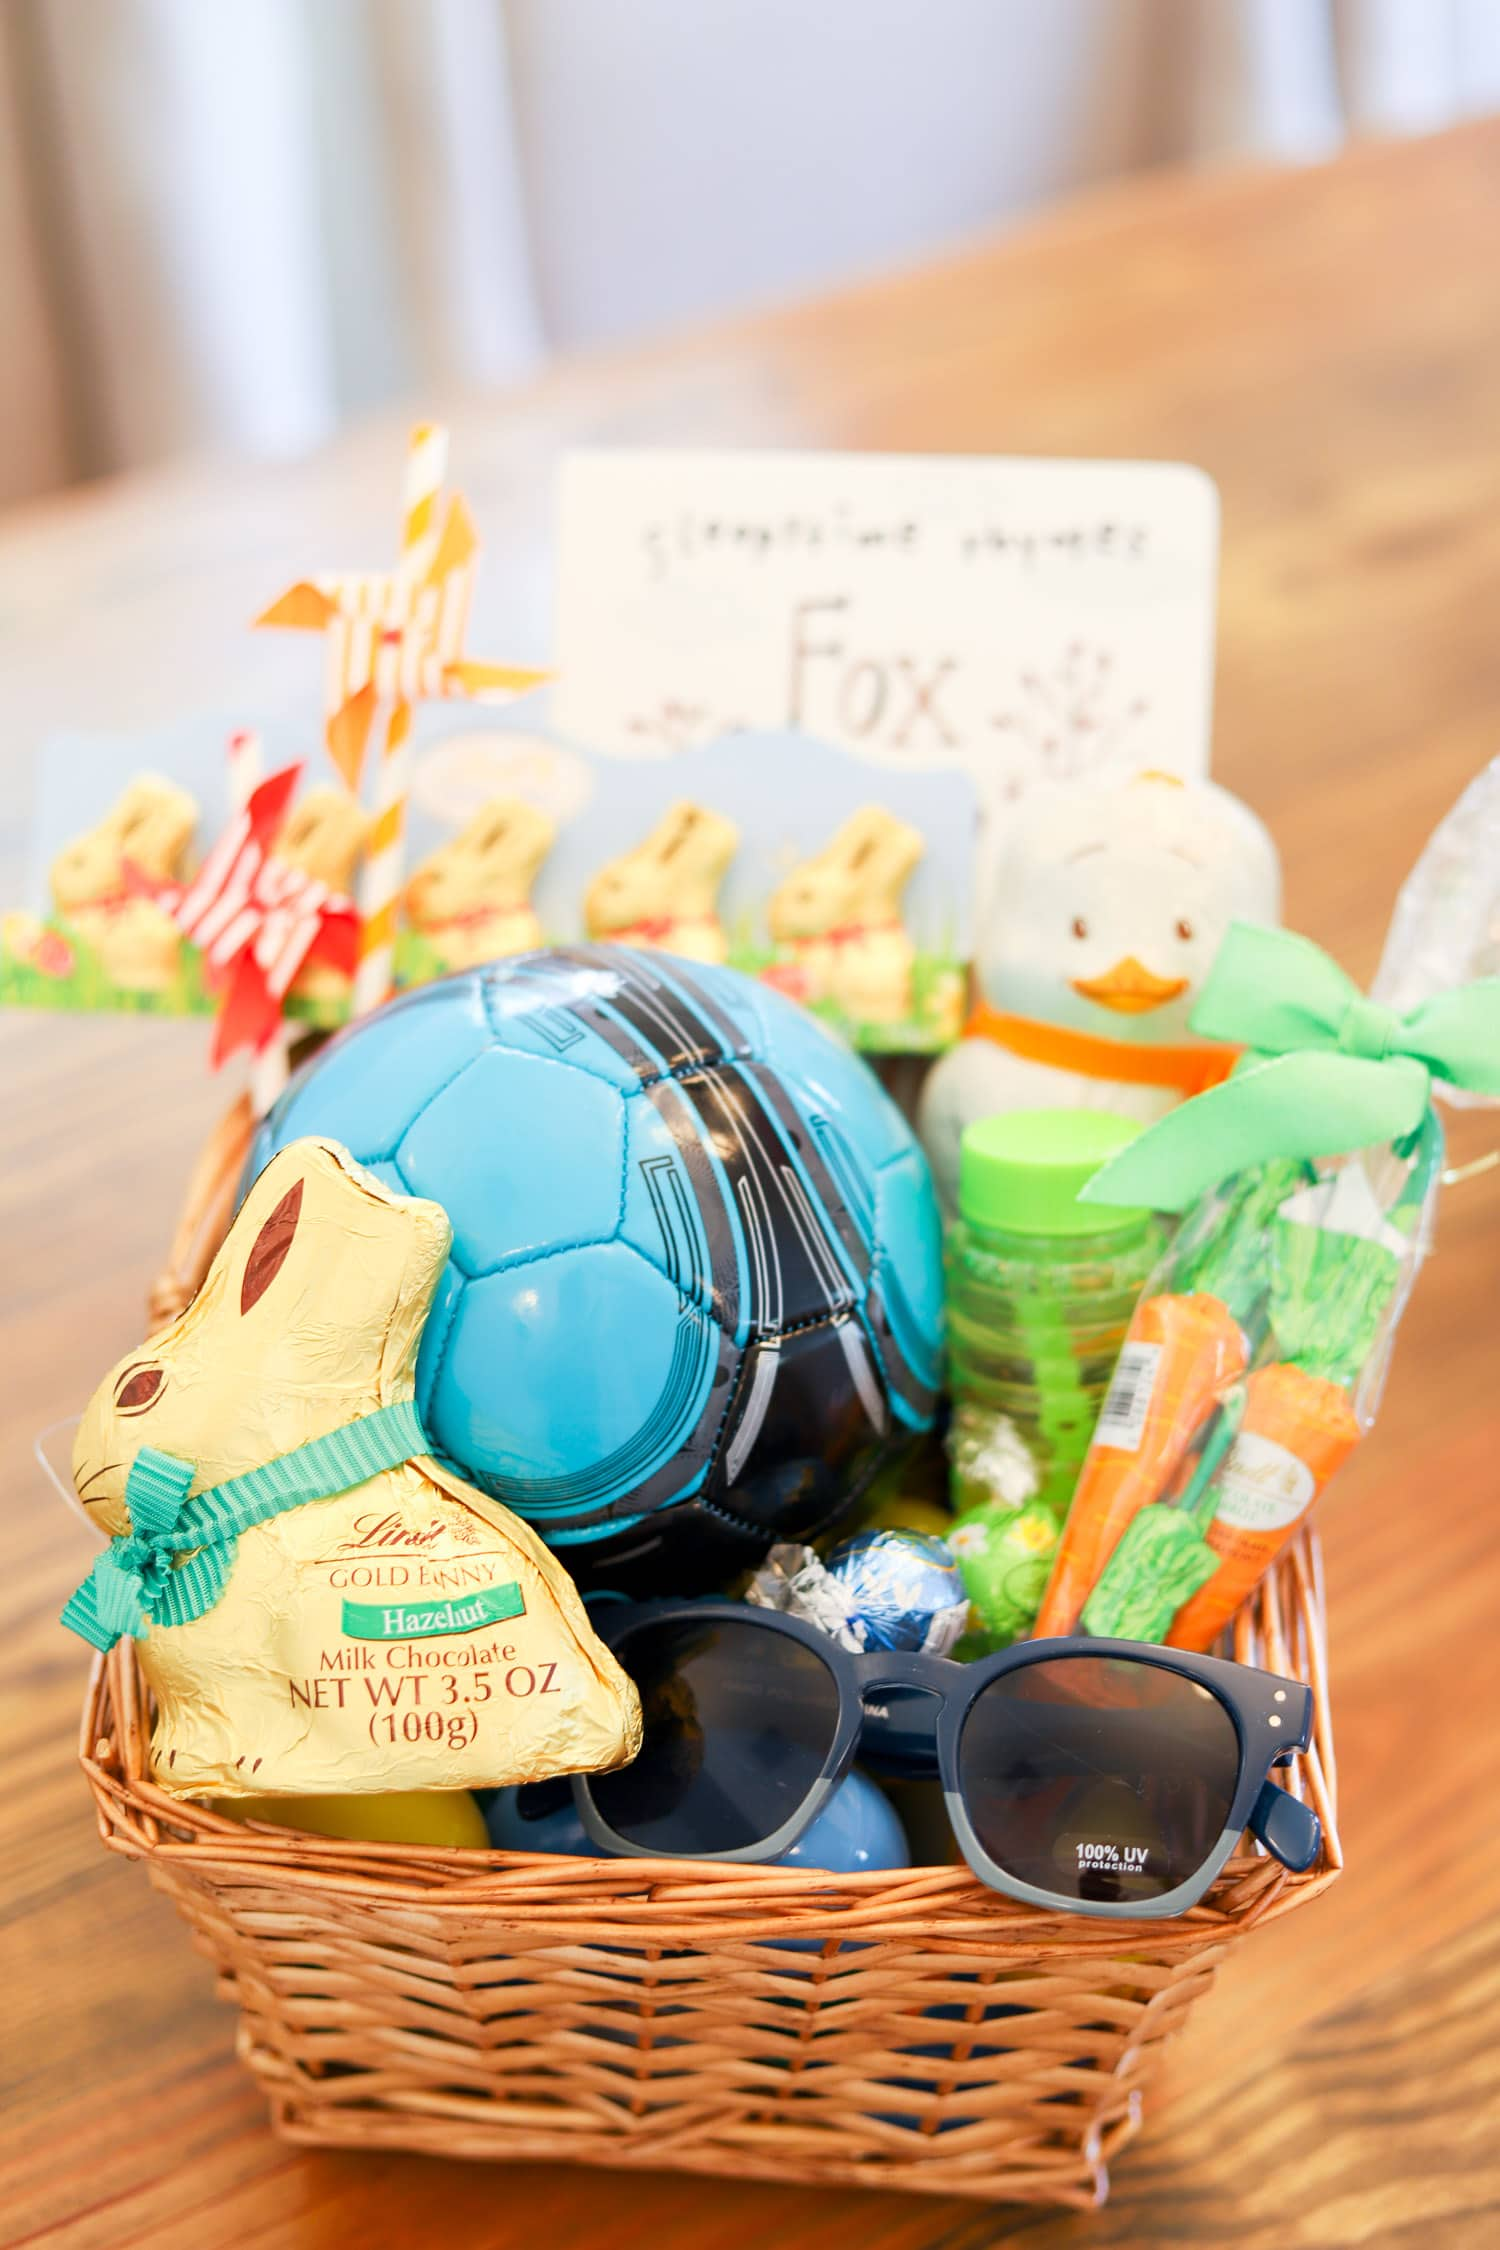 Cute easter basket ideas party favors ashley brooke nicholas cute easter party ideas lindt gold bunny easter negle Gallery